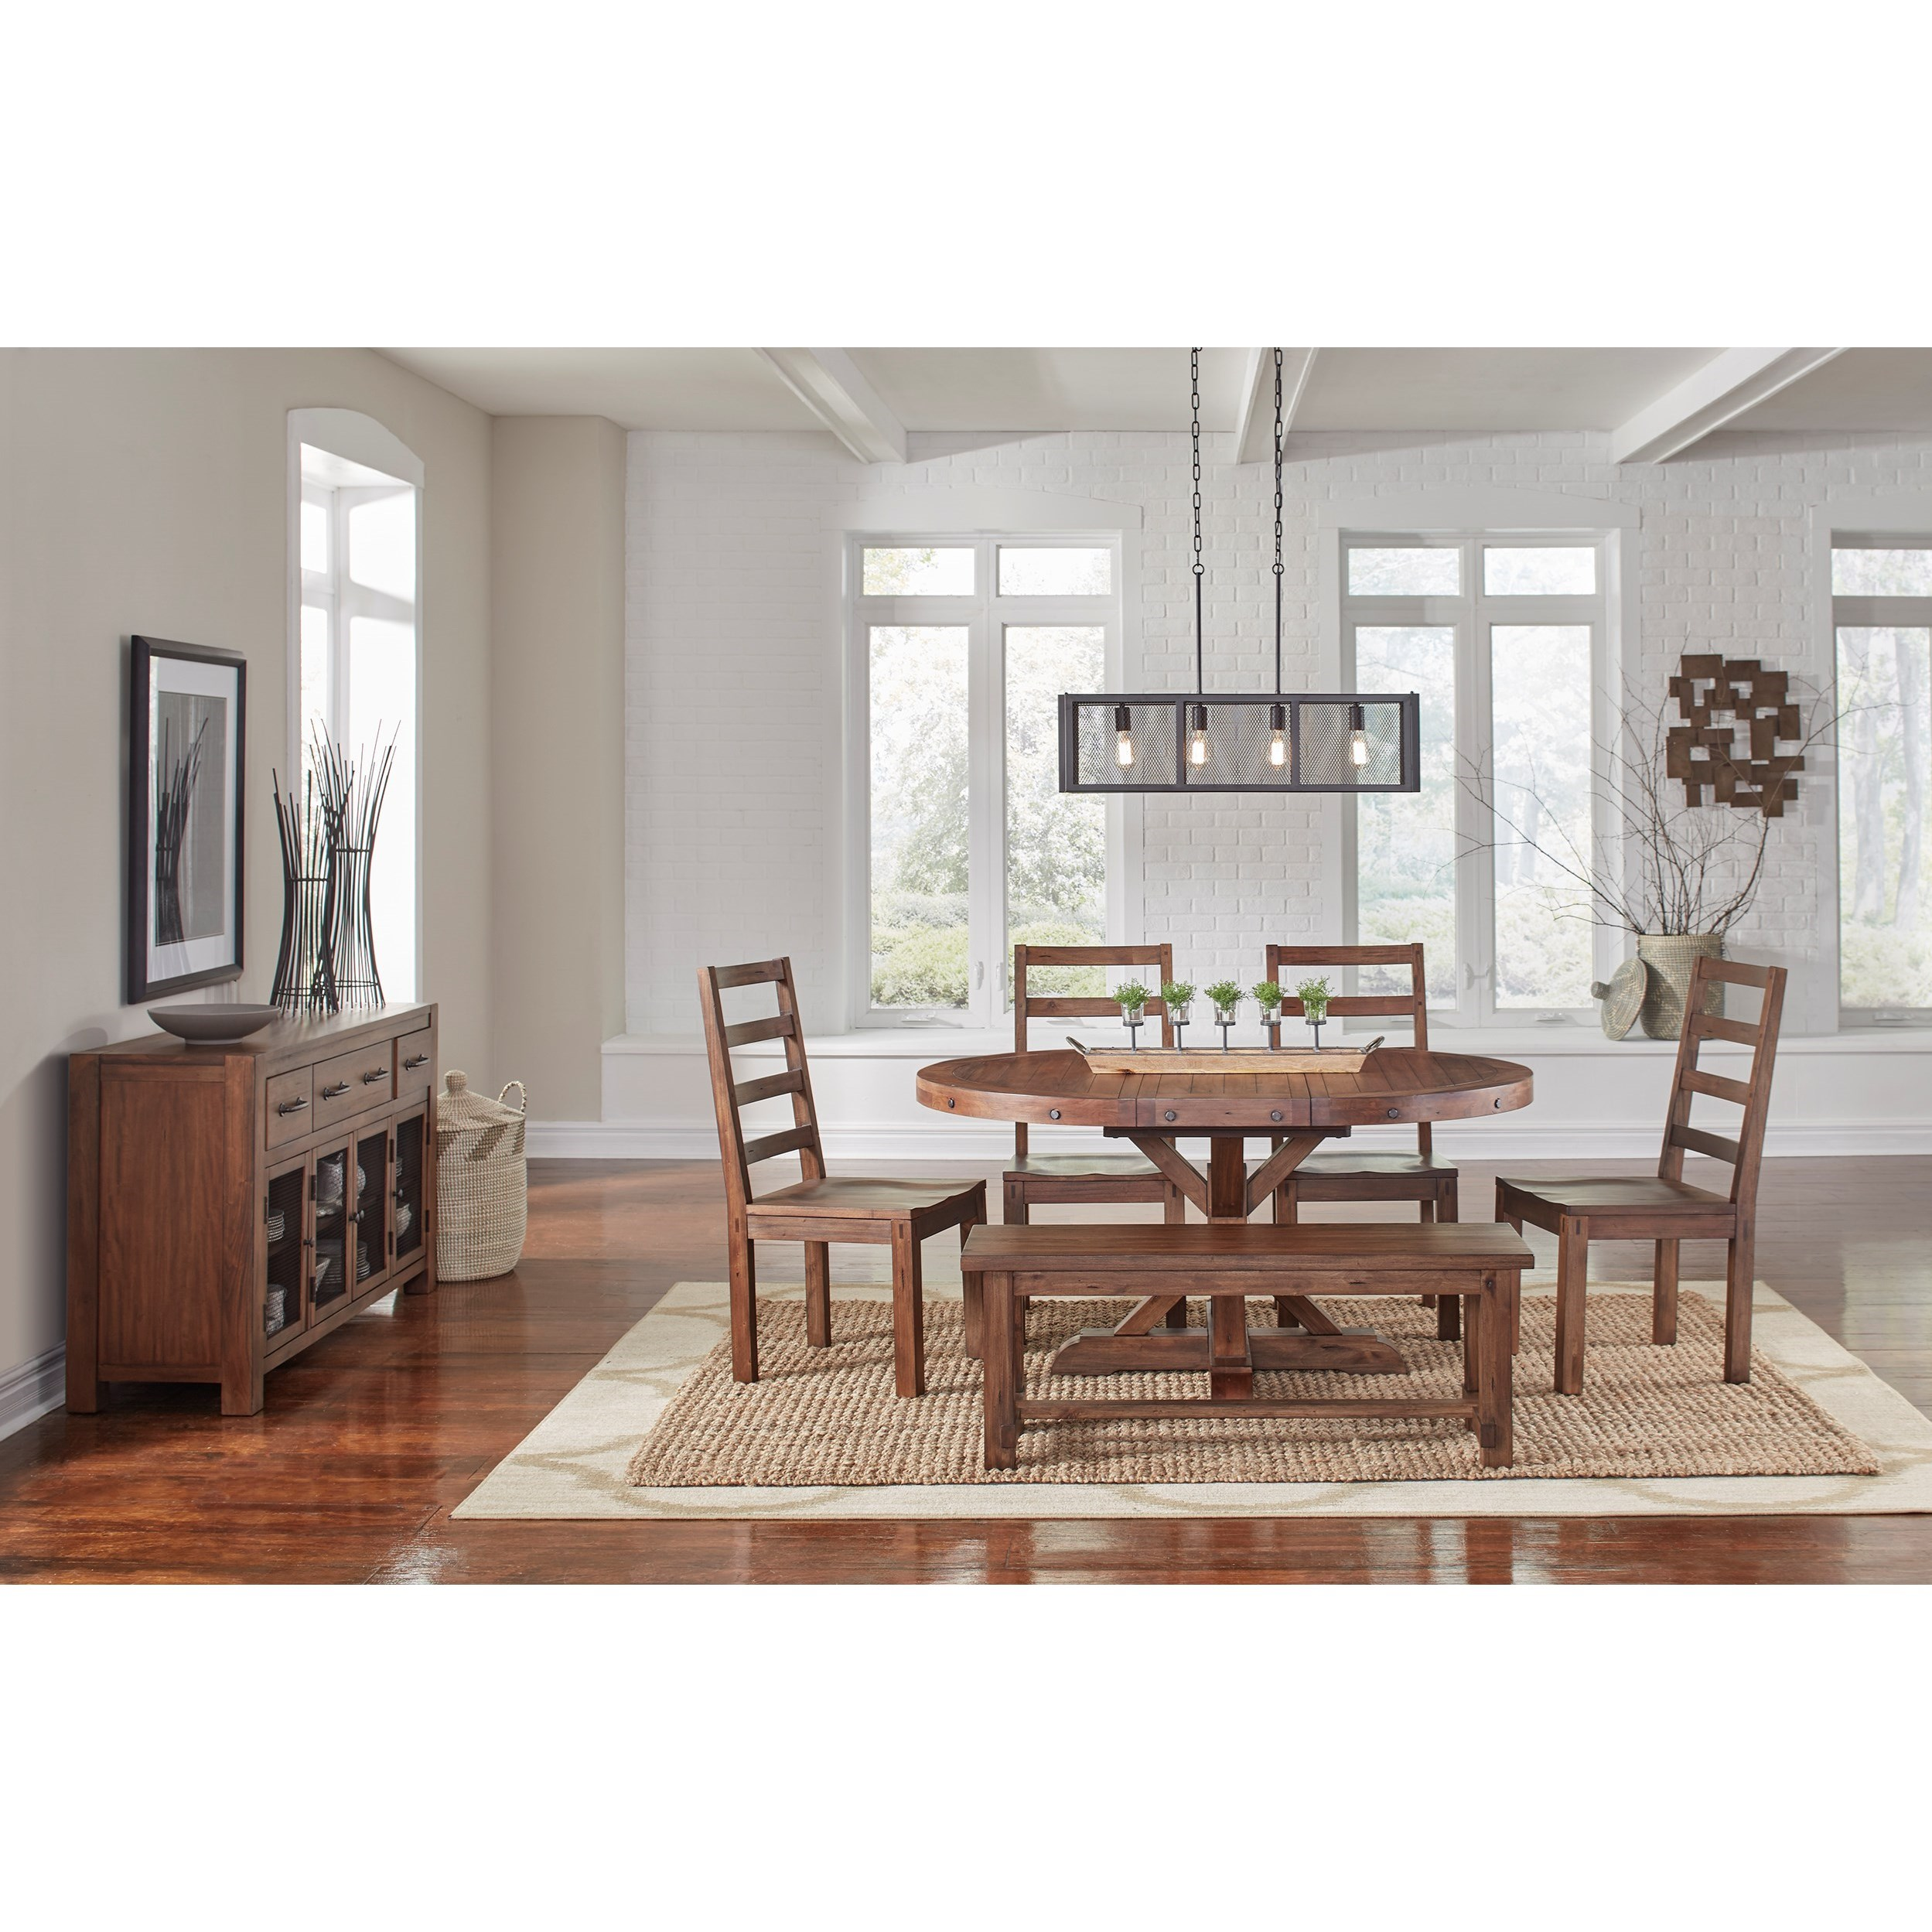 AAmerica Anacortes Dining Room Group - Item Number: ANA Dining Room Group 2